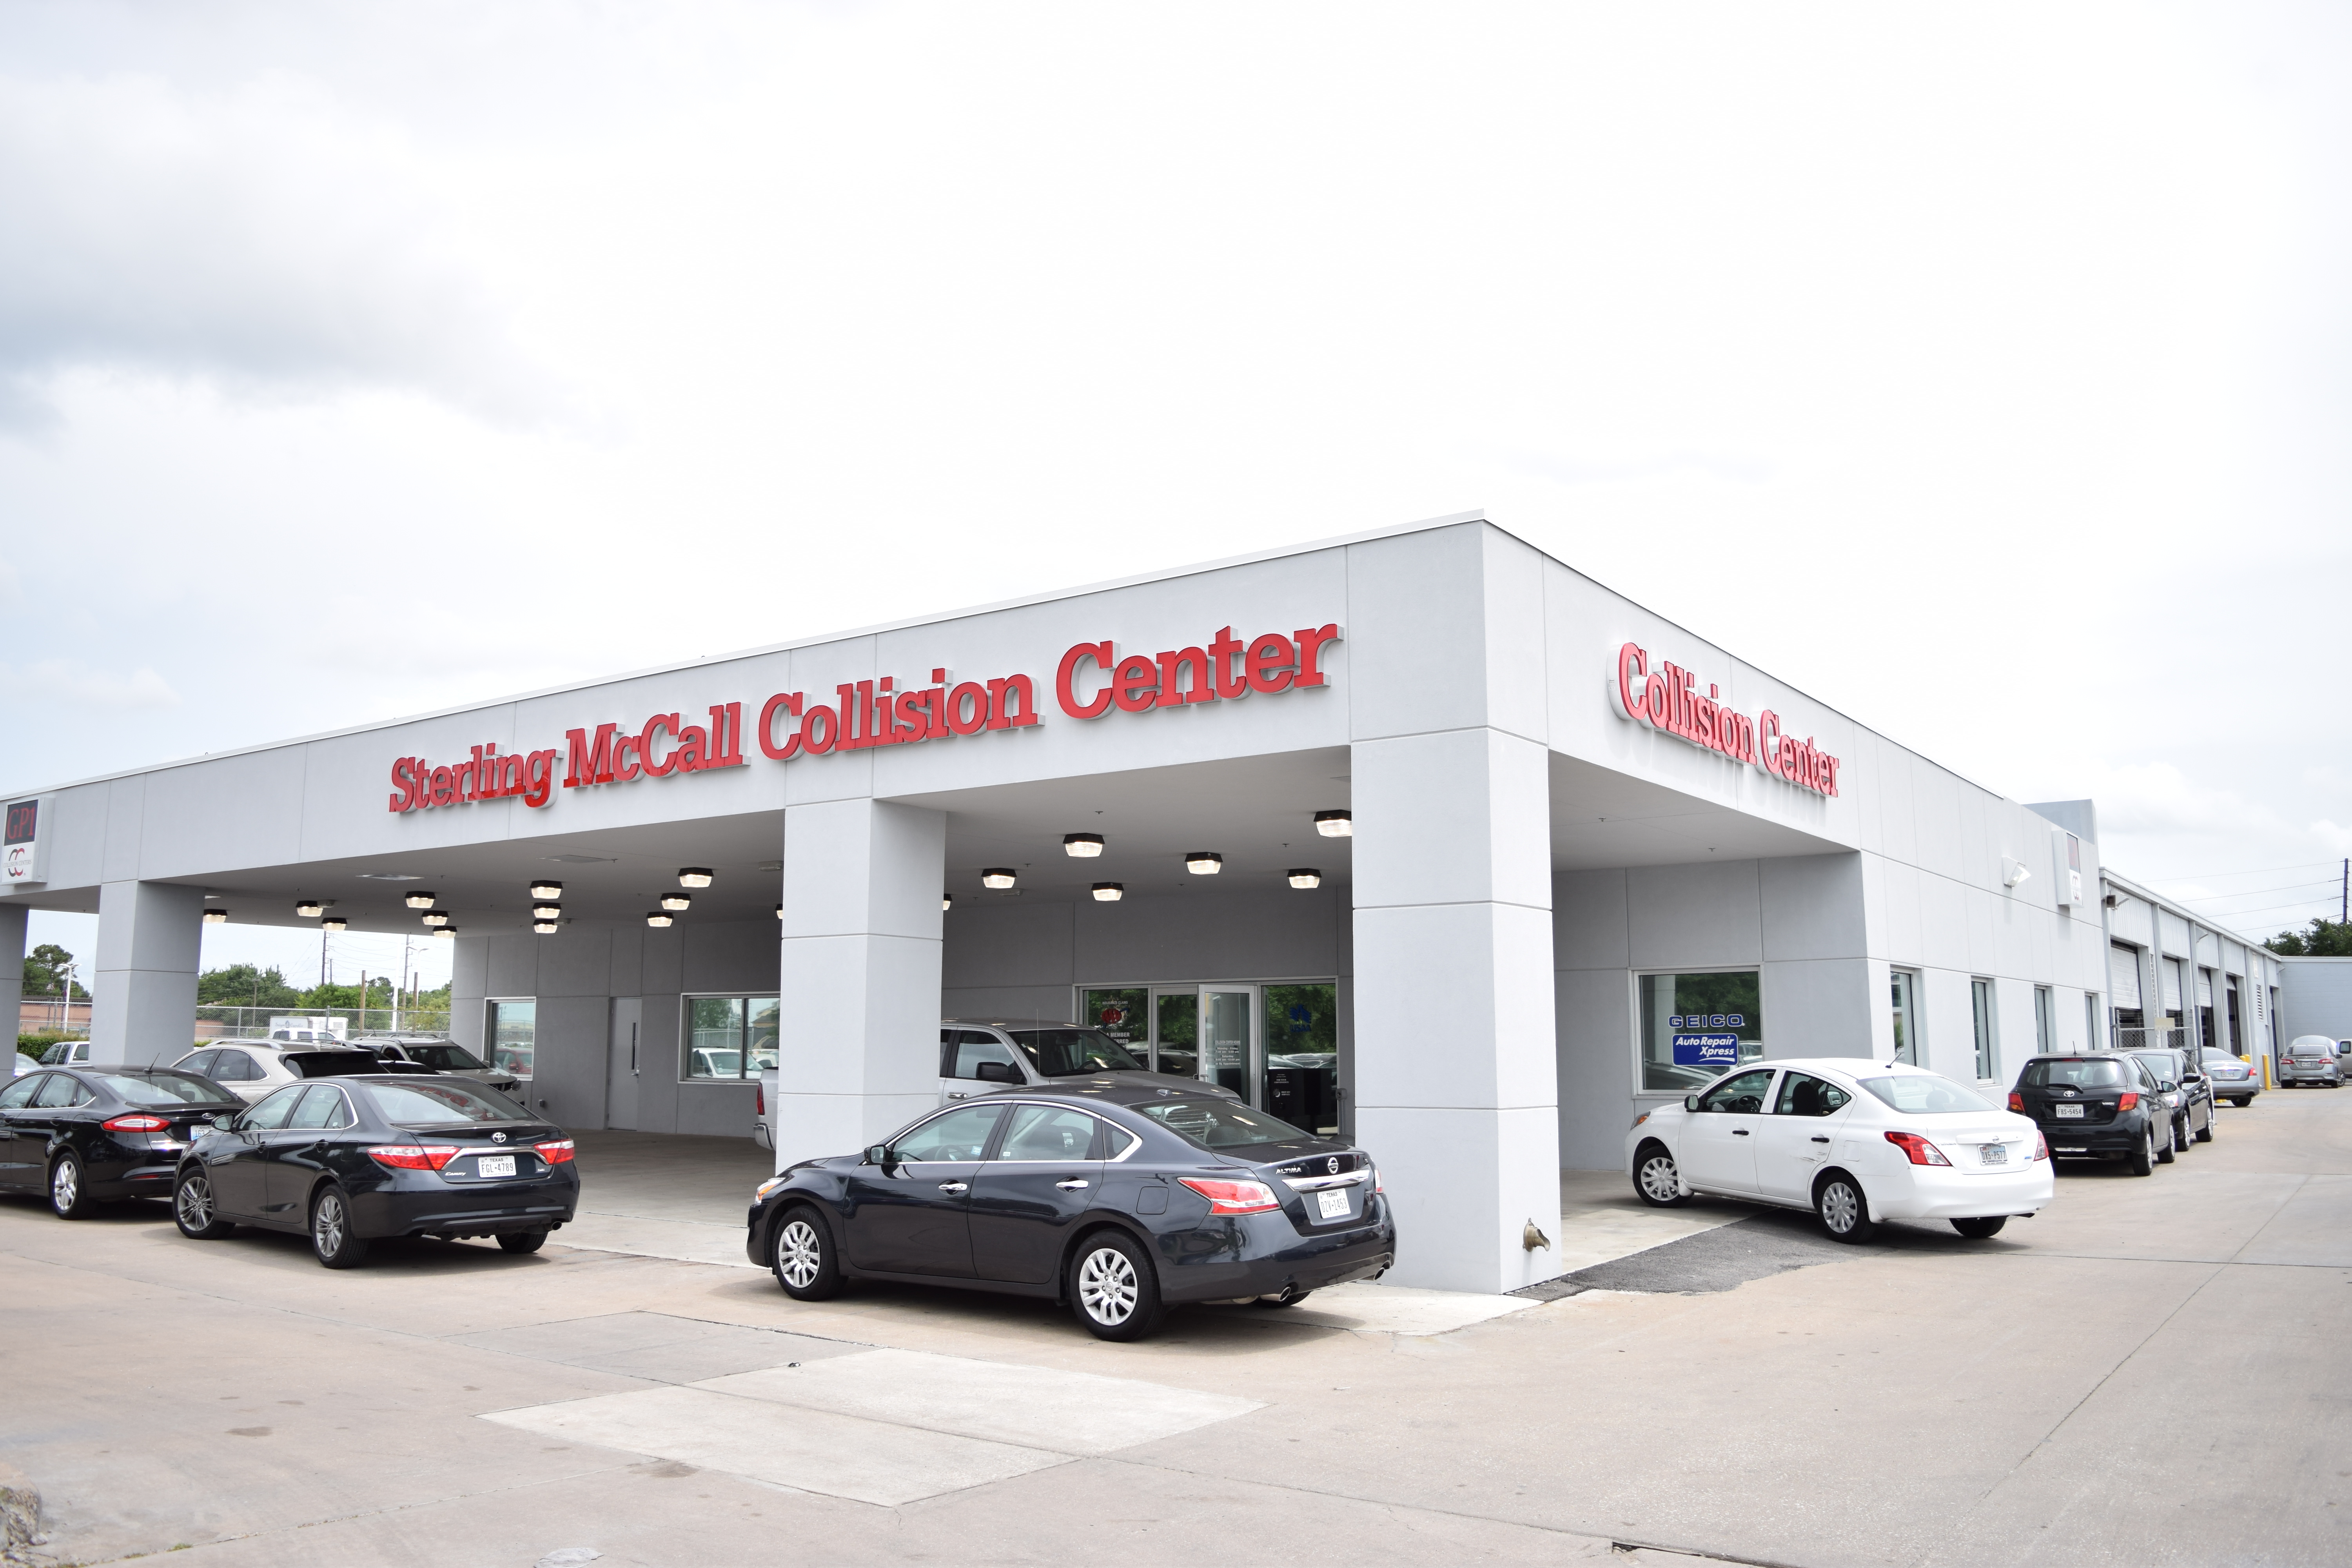 Sterling McCall Nissan Collision Center of Stafford in Stafford, TX 77477 - ChamberofCommerce.com